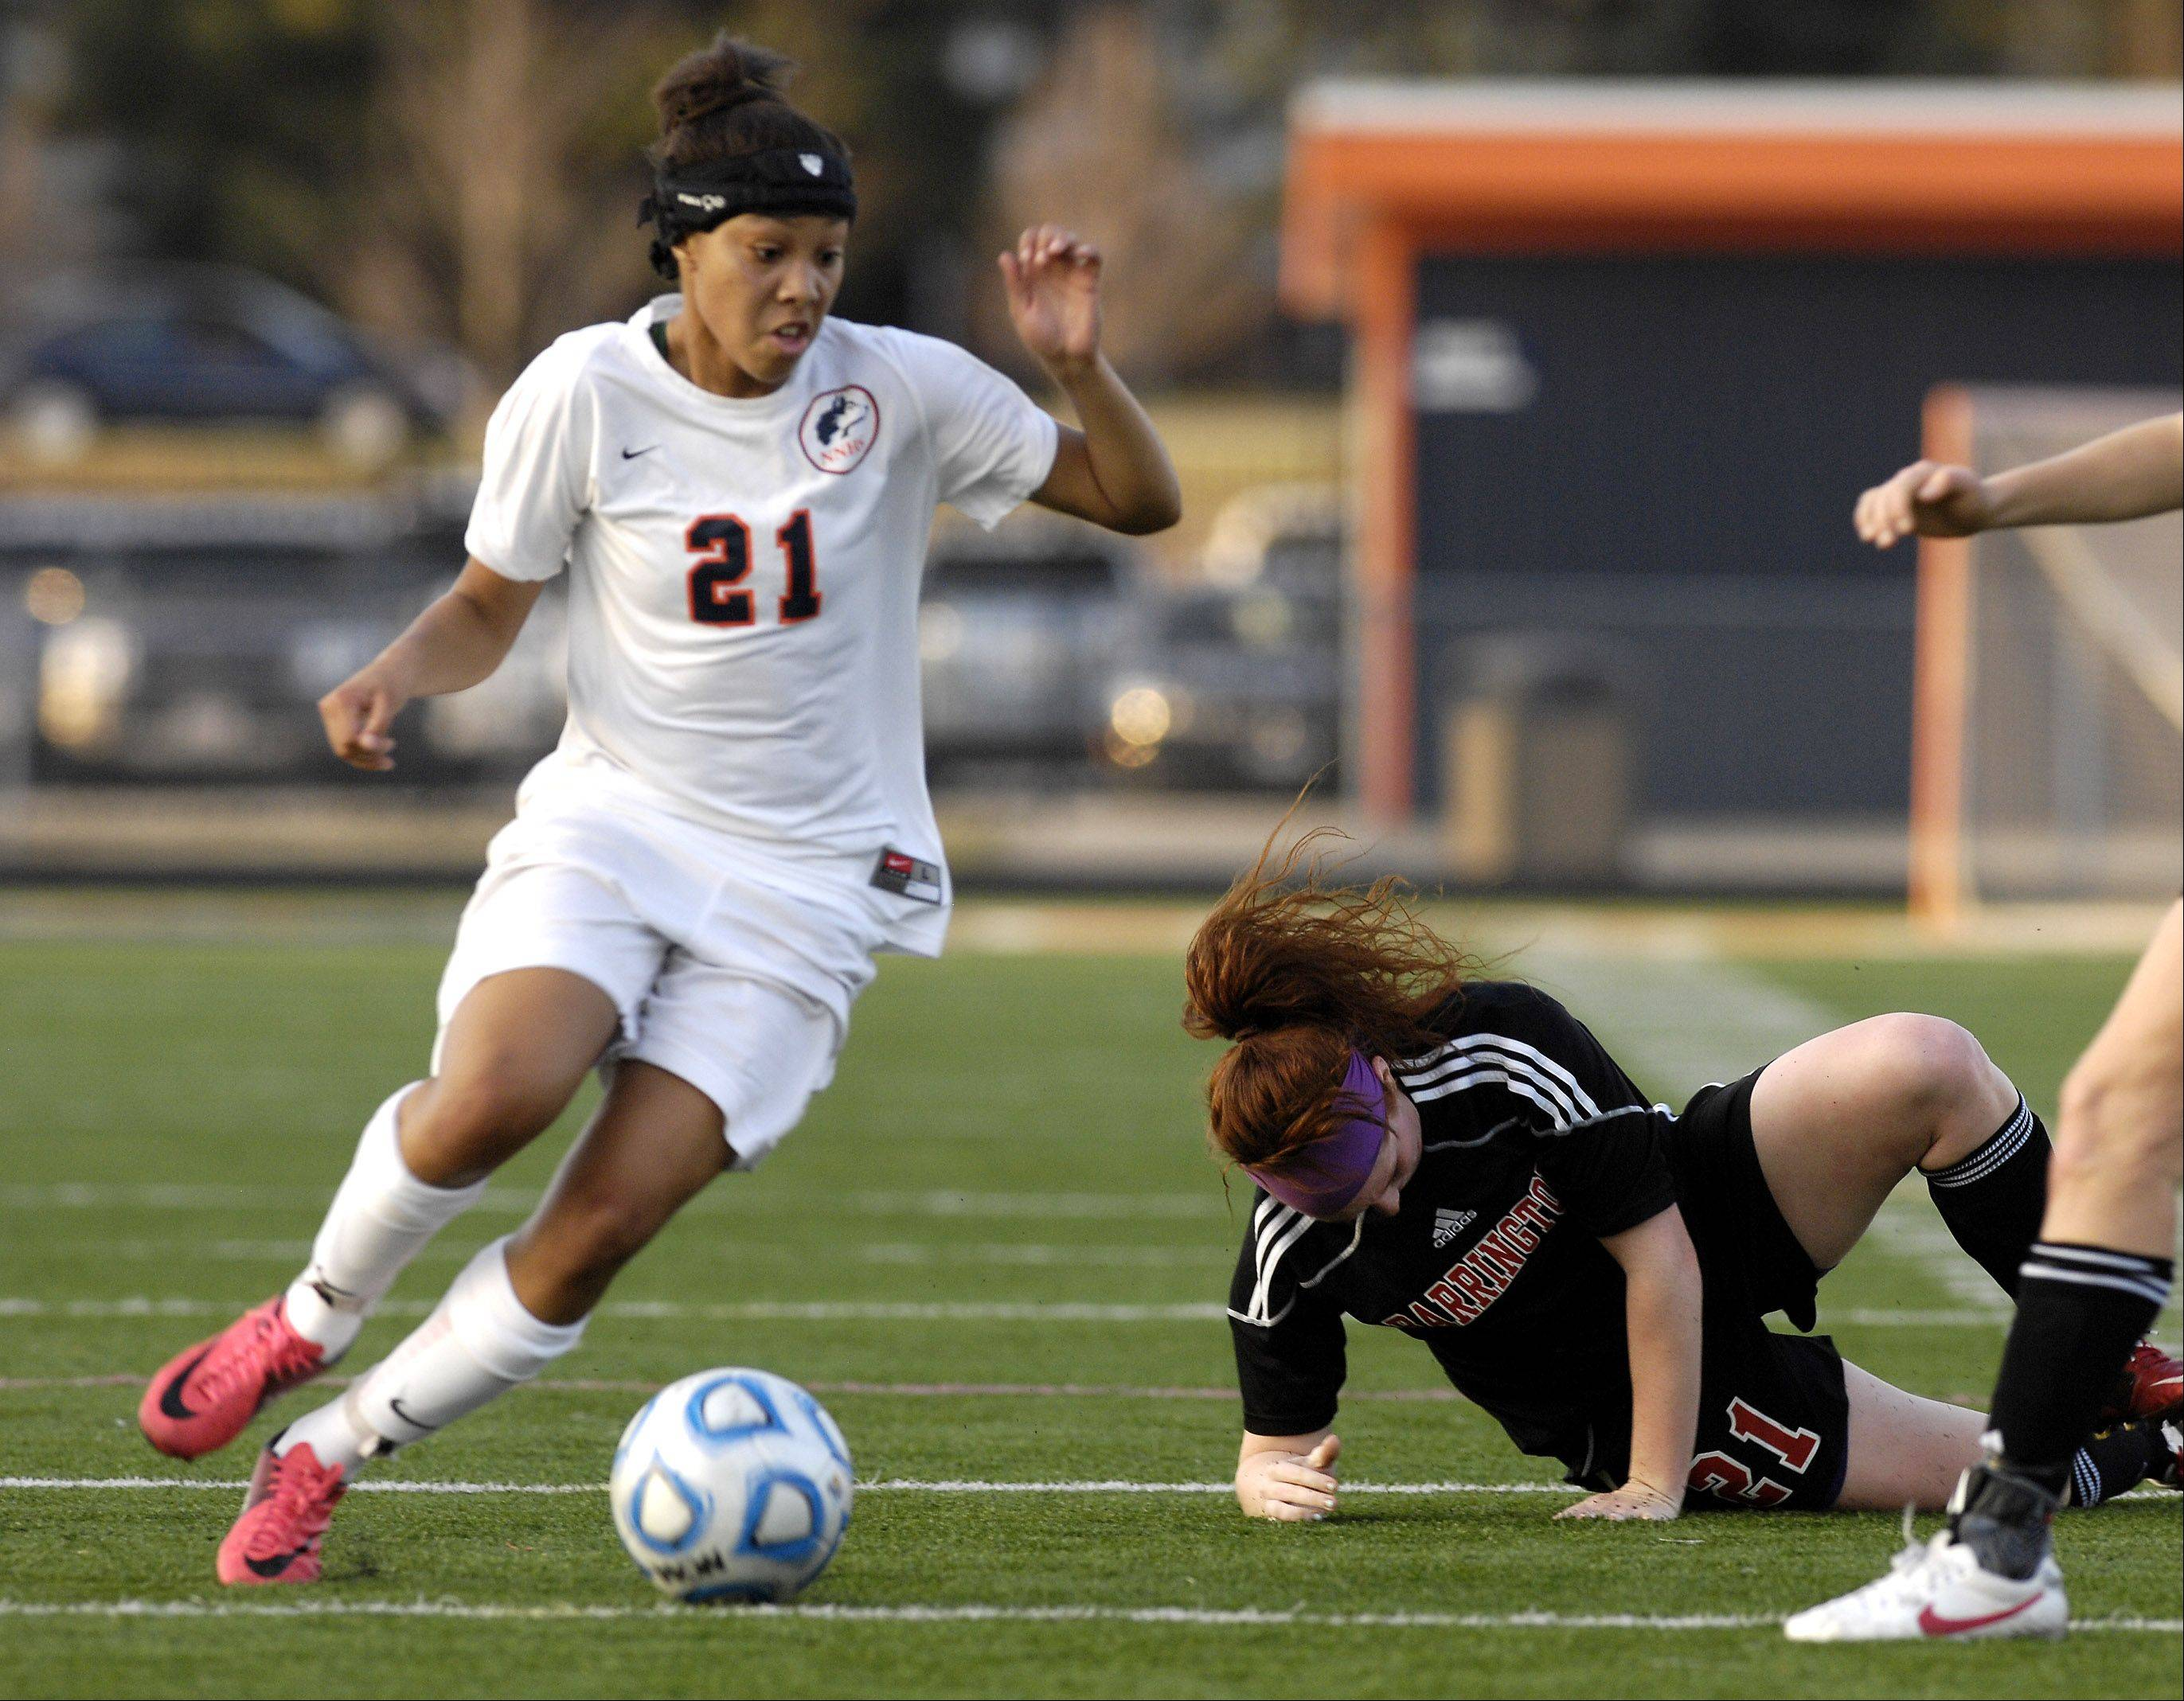 Zoe Swift of Naperville North has been named Gatorade Illinois girls soccer player of the year.